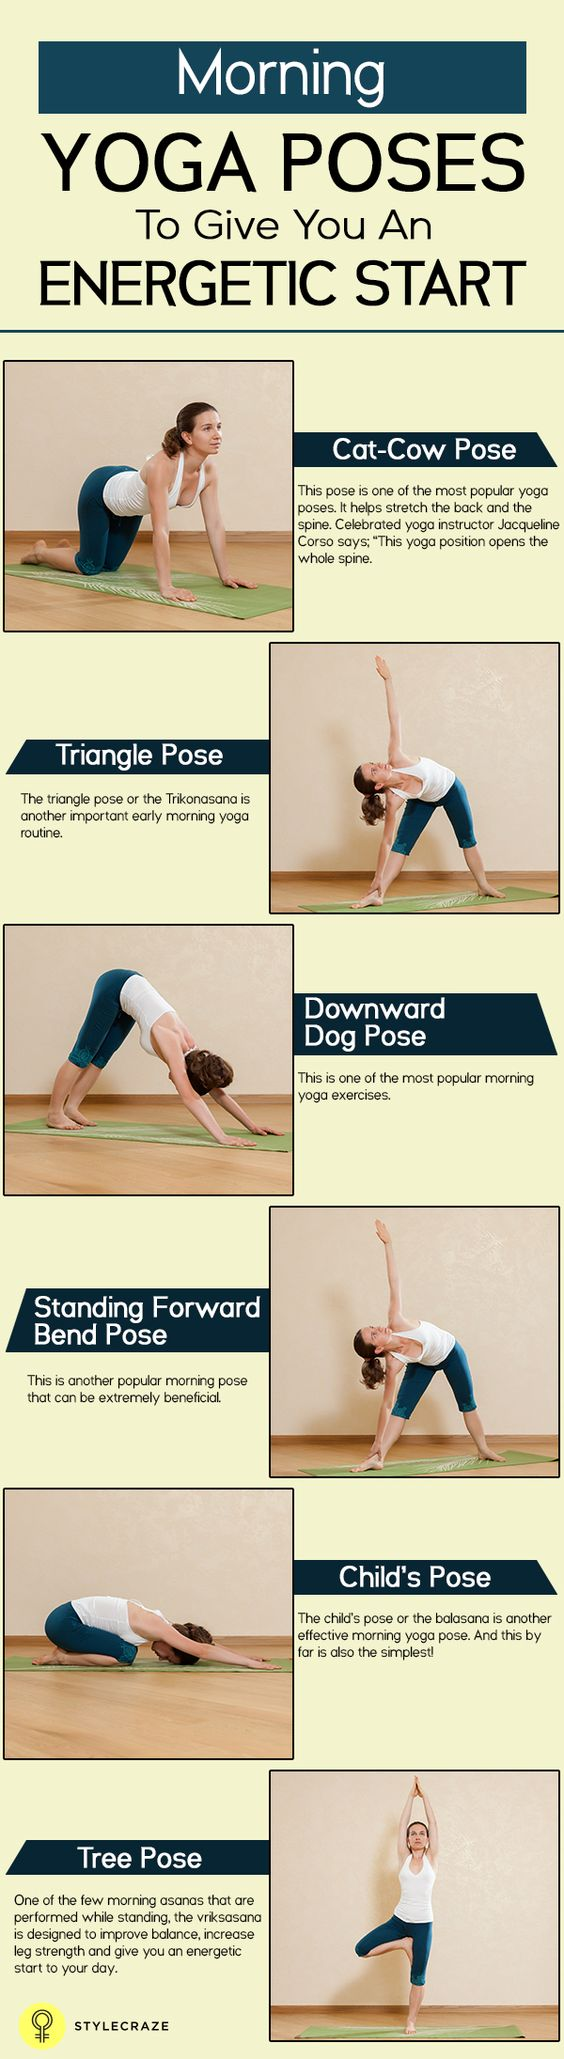 yoga is one of the best ways of keeping the body fit, the mind relaxed and energetic. Performing yogic exercises will not only help you get that much needed physical activity, but will also help you make an energetic start to your day. Let's have a look at the 10 Effective Morning Yoga Exercises: #Yoga